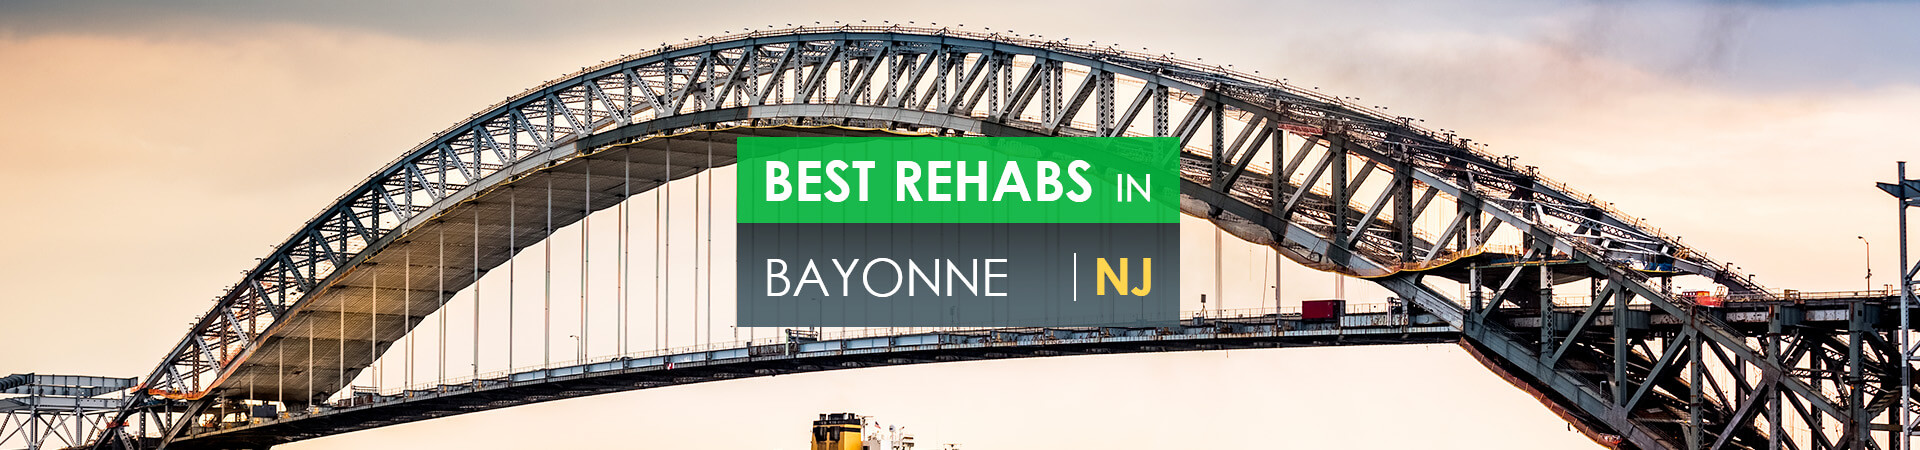 Best rehabs in Bayonne, NJ